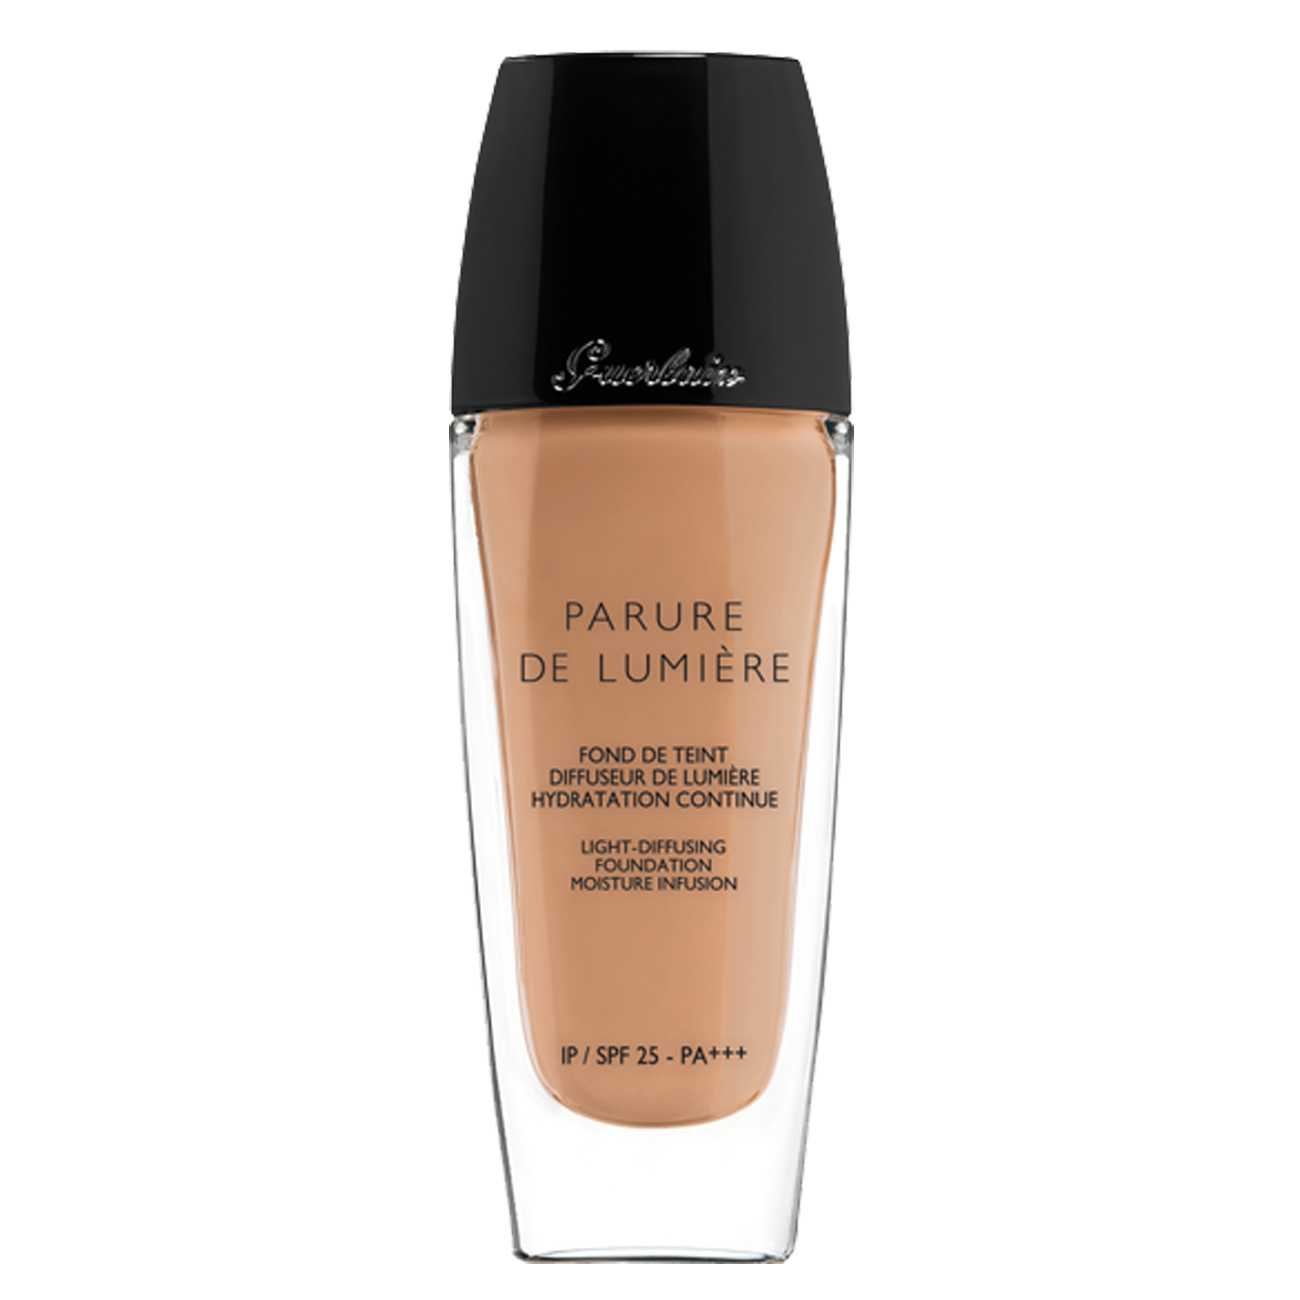 PARURE DE LUMIERE 30 ML Beige Moyen 4 imagine produs